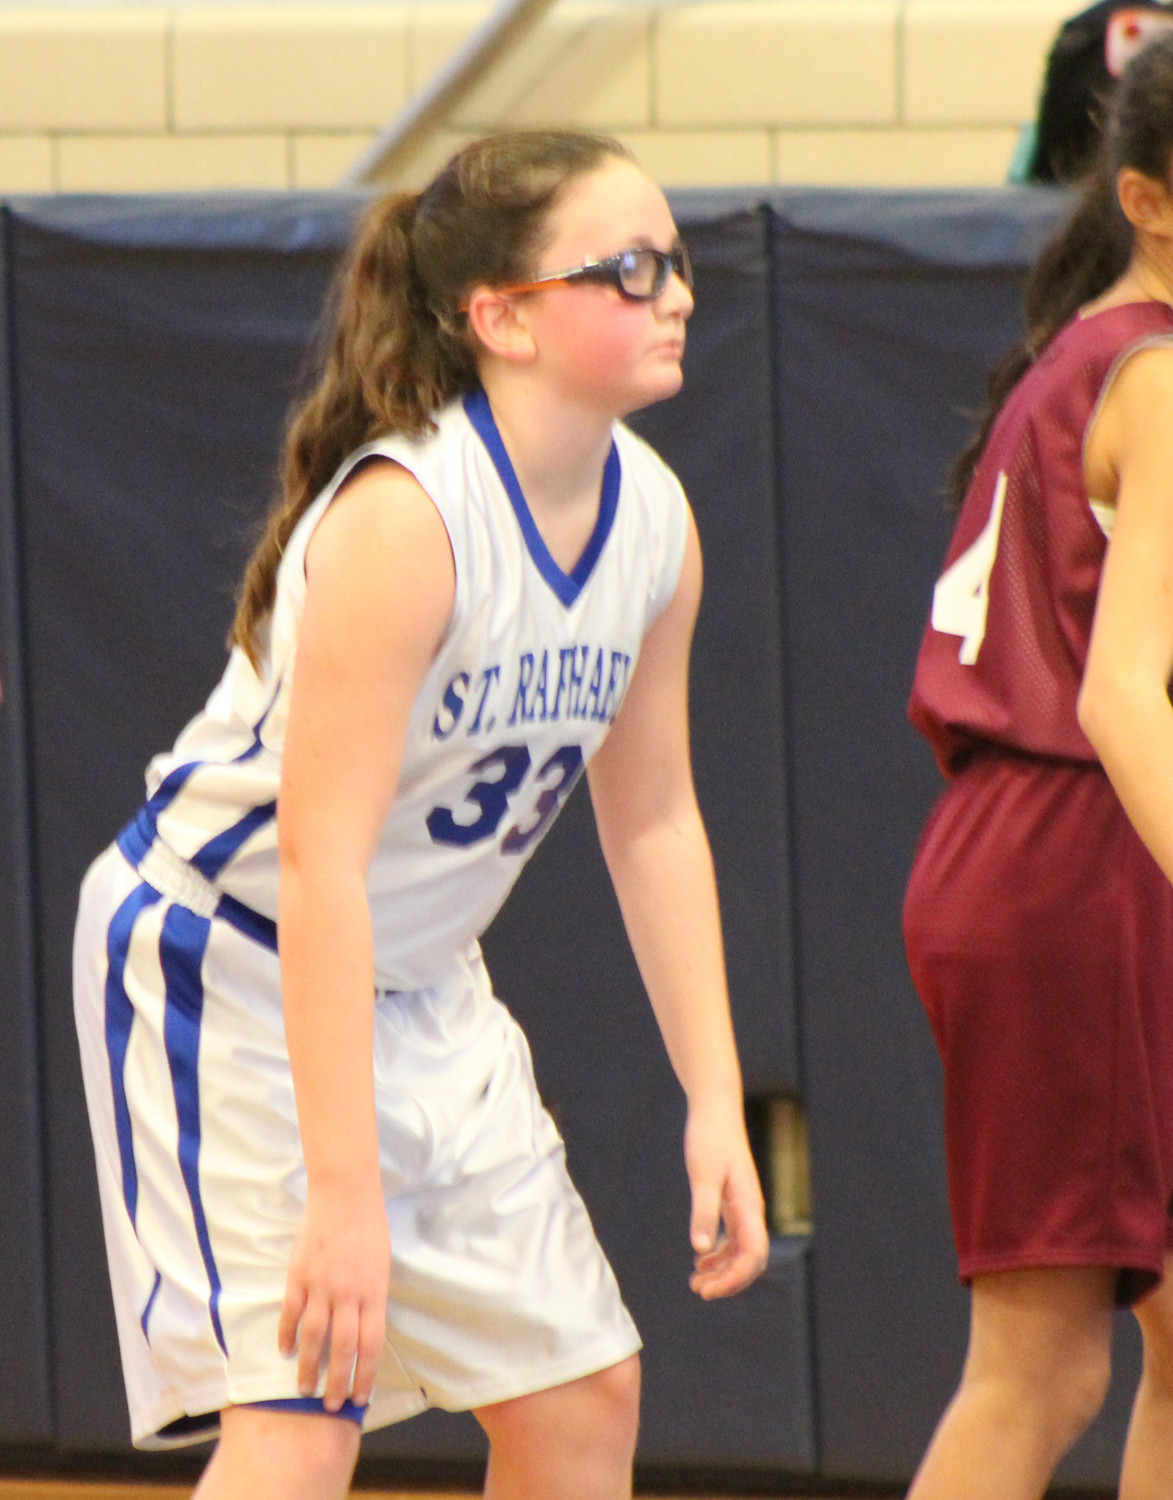 Sophia Lindquist held her own when St. Raphael was on defense against St. Barnabas.